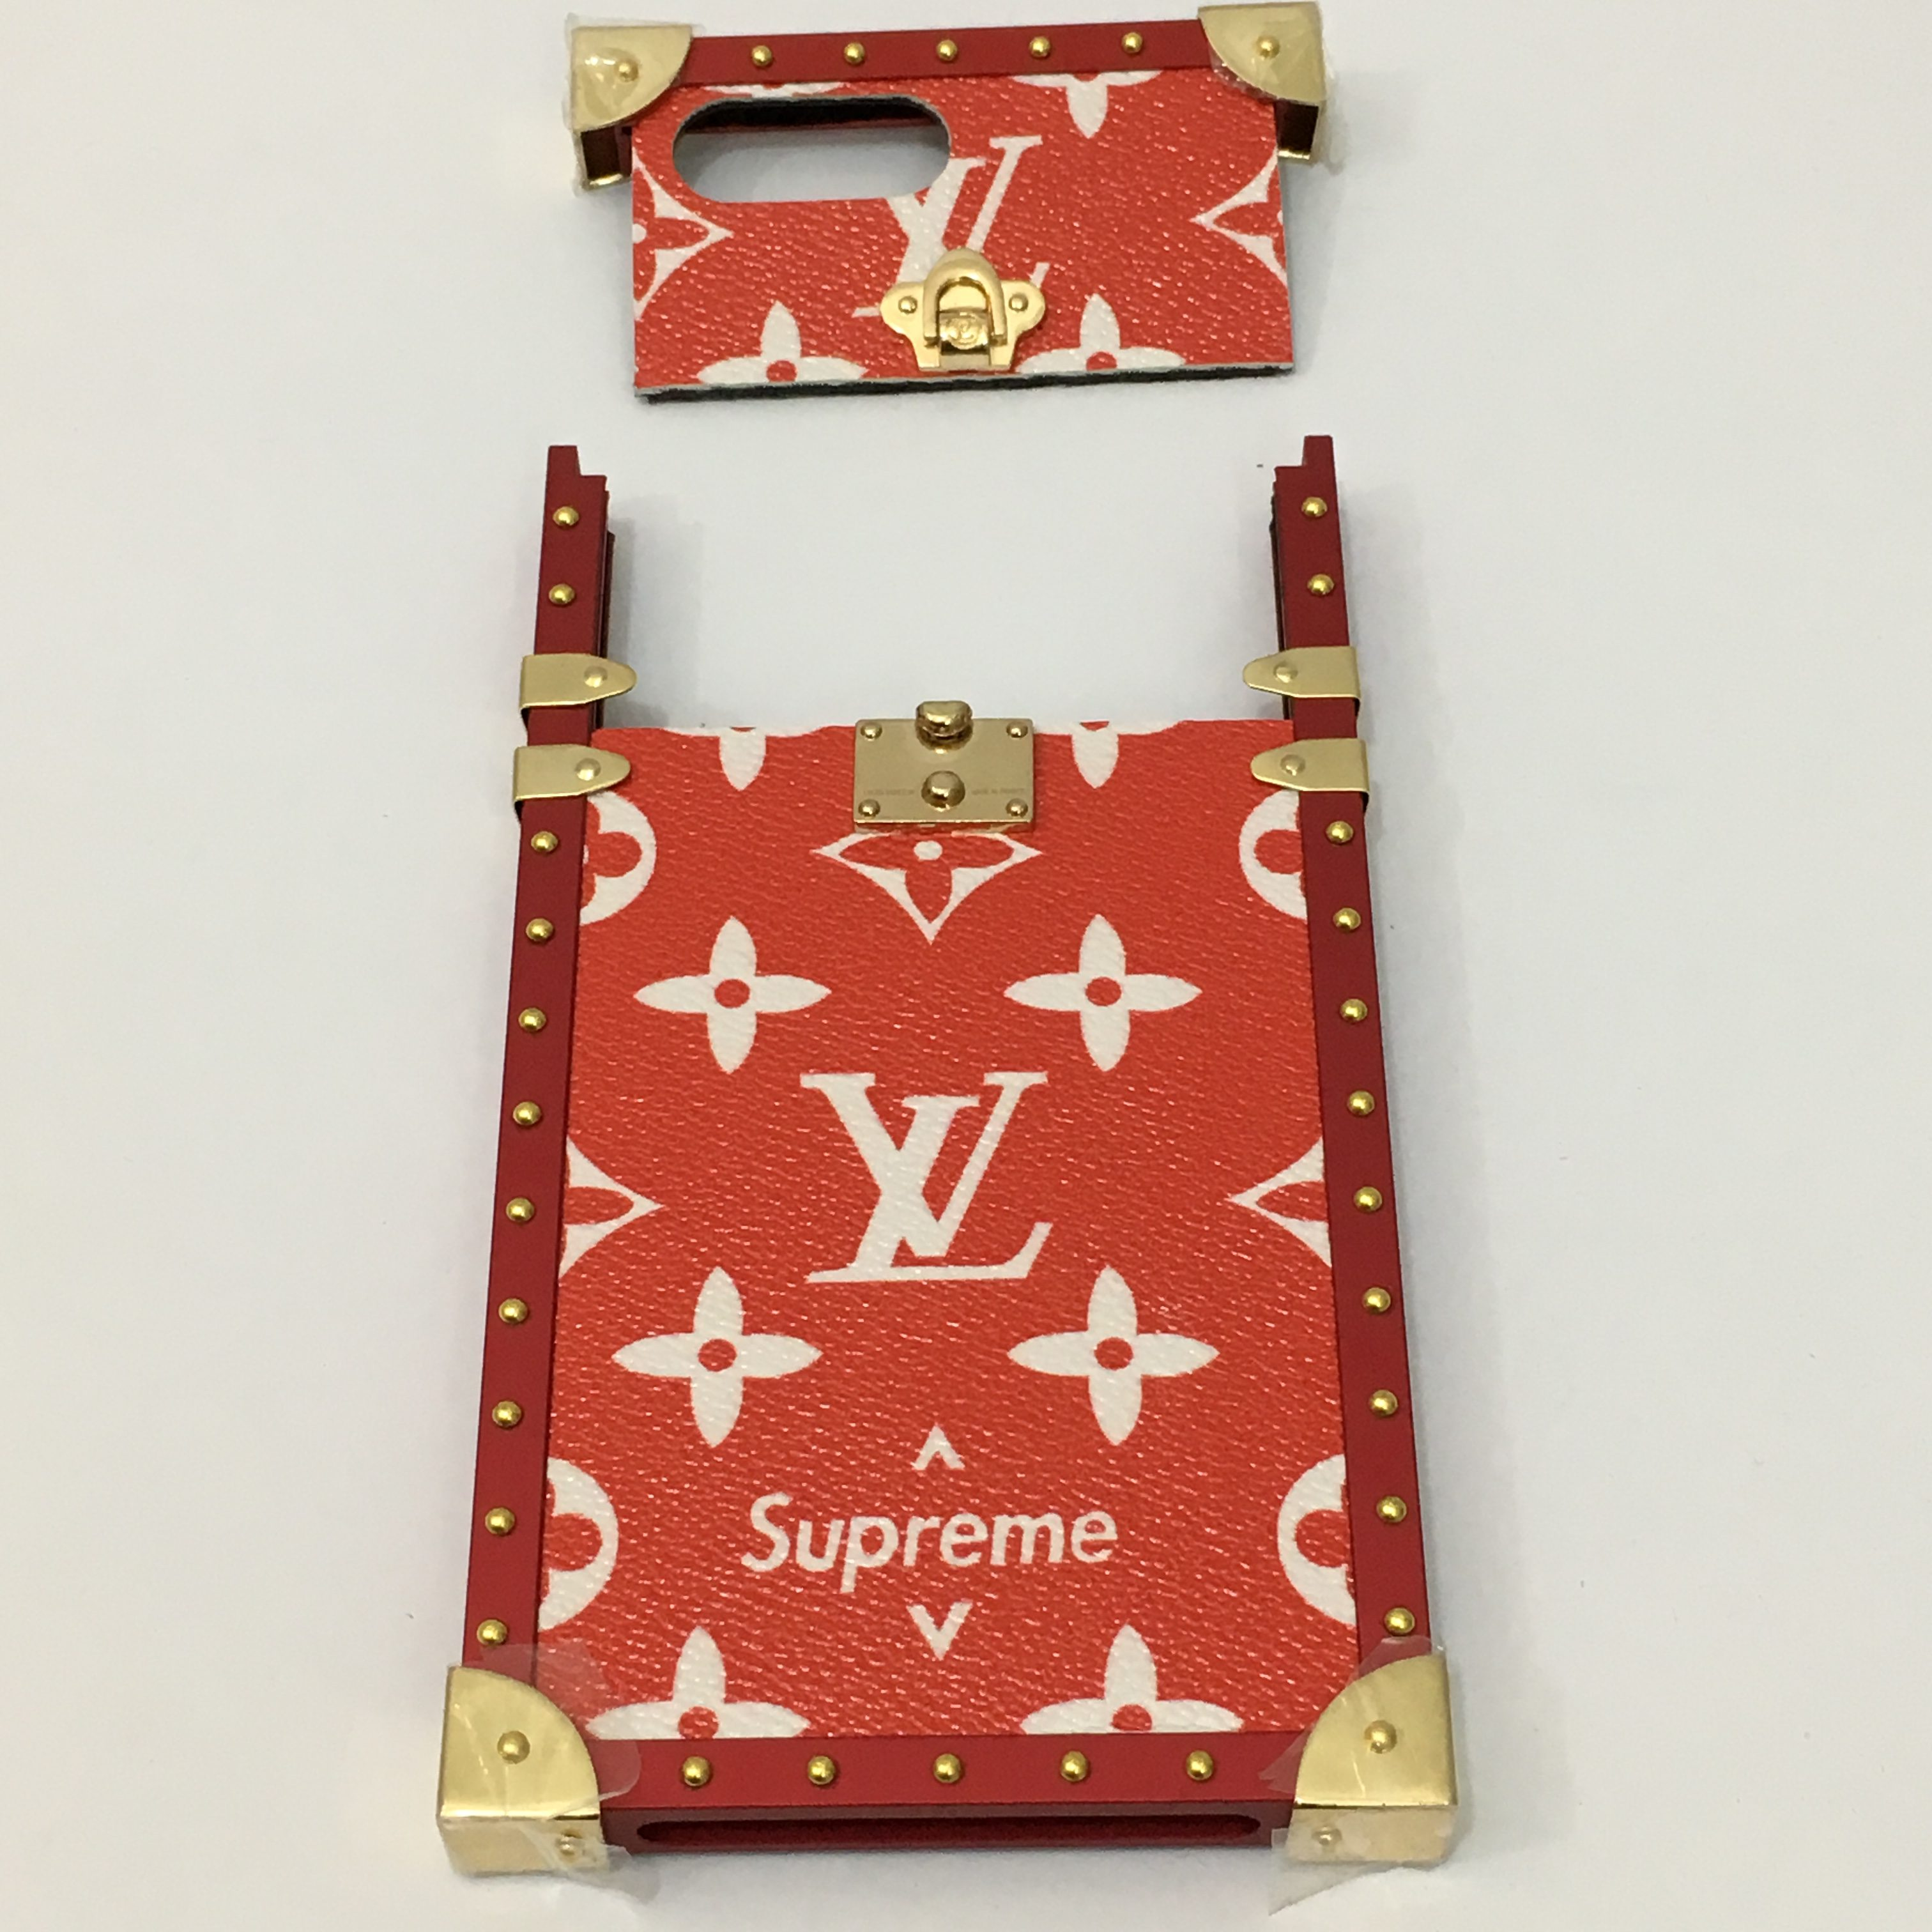 Supreme Iphone Case Real